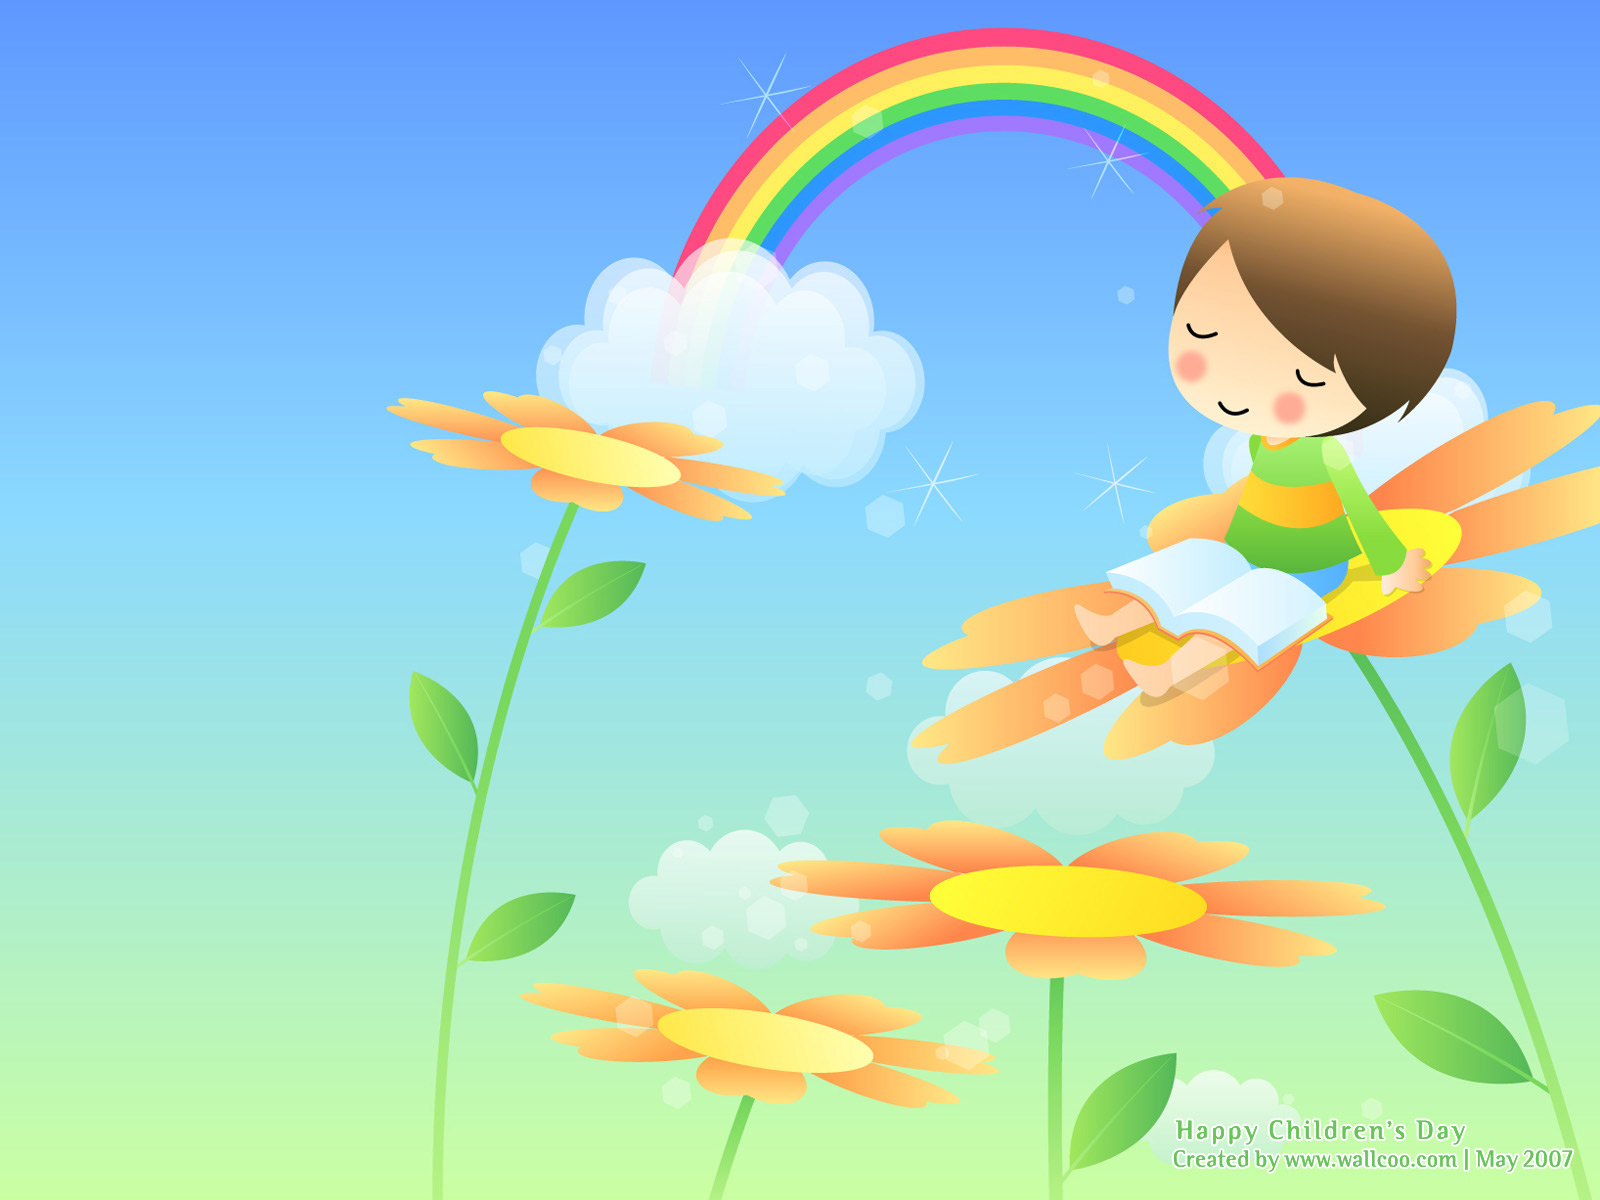 Colourful Illustrations for Childrens Day 16001200 NO21 Wallpaper 1600x1200